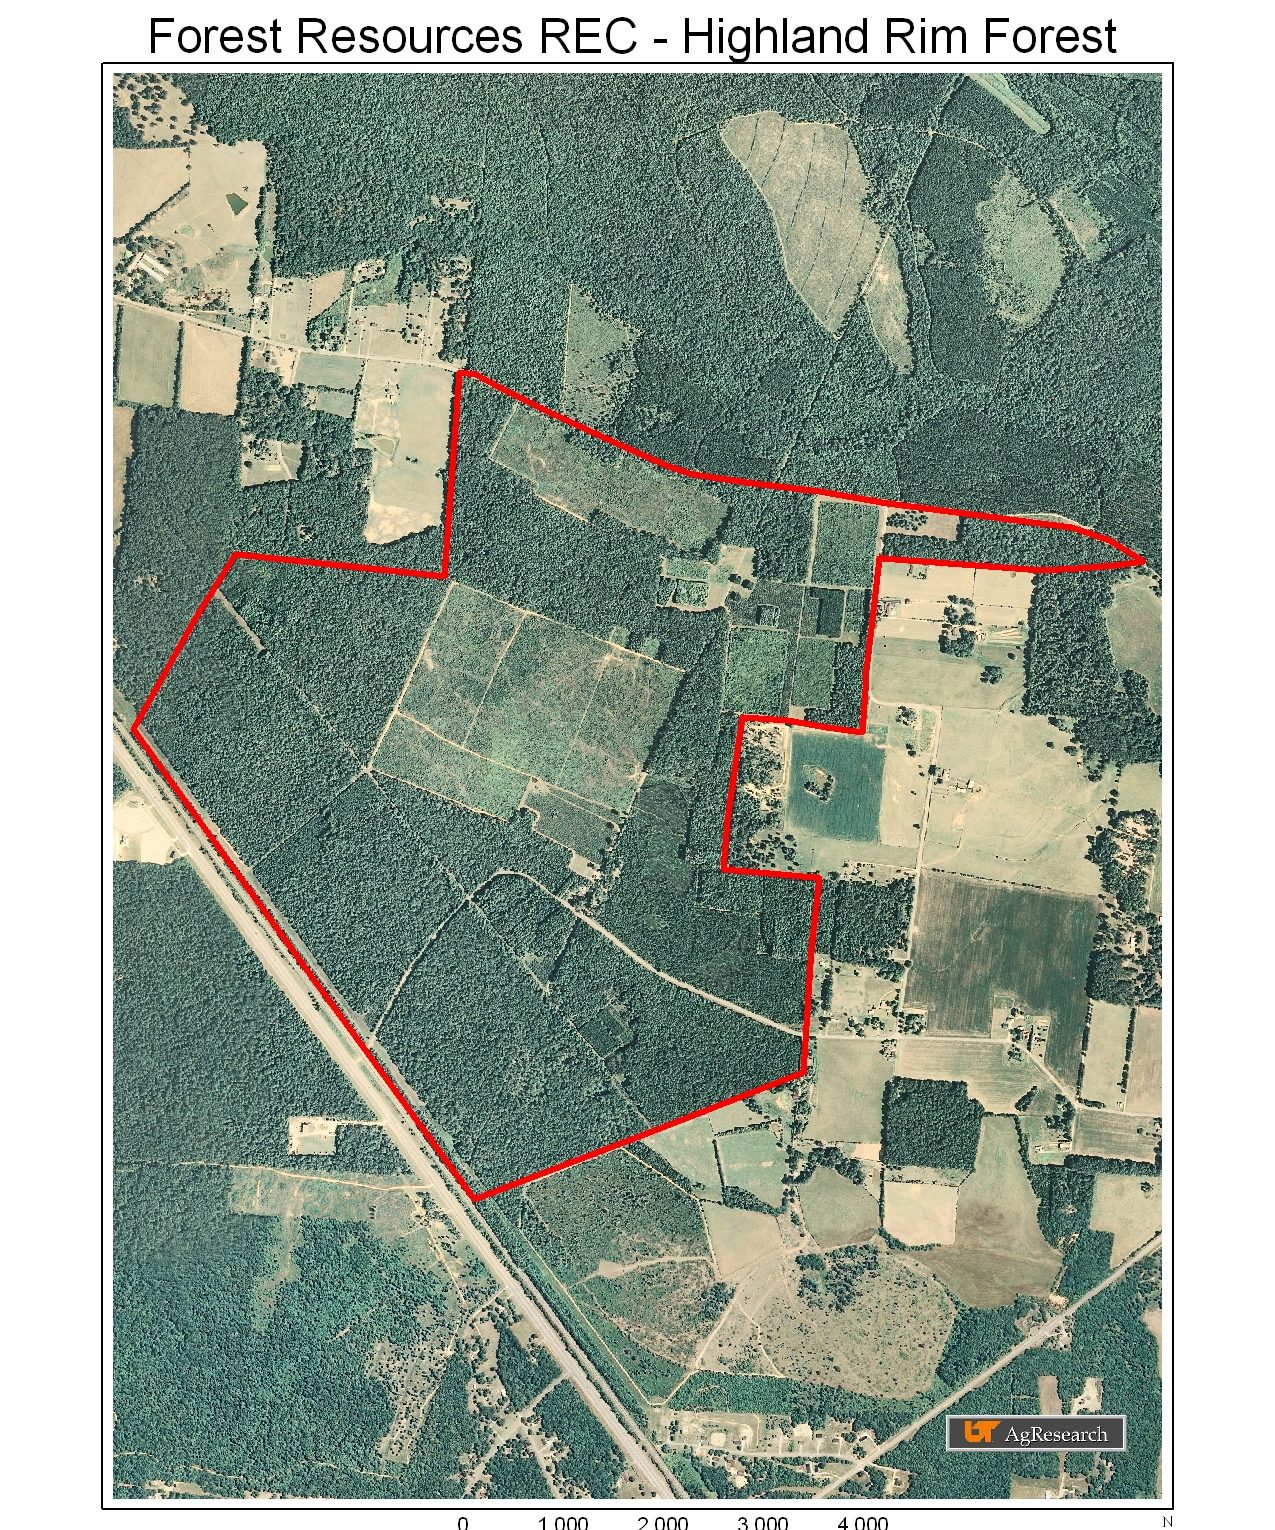 Aerial image icon for Highland Rim Forest Unit